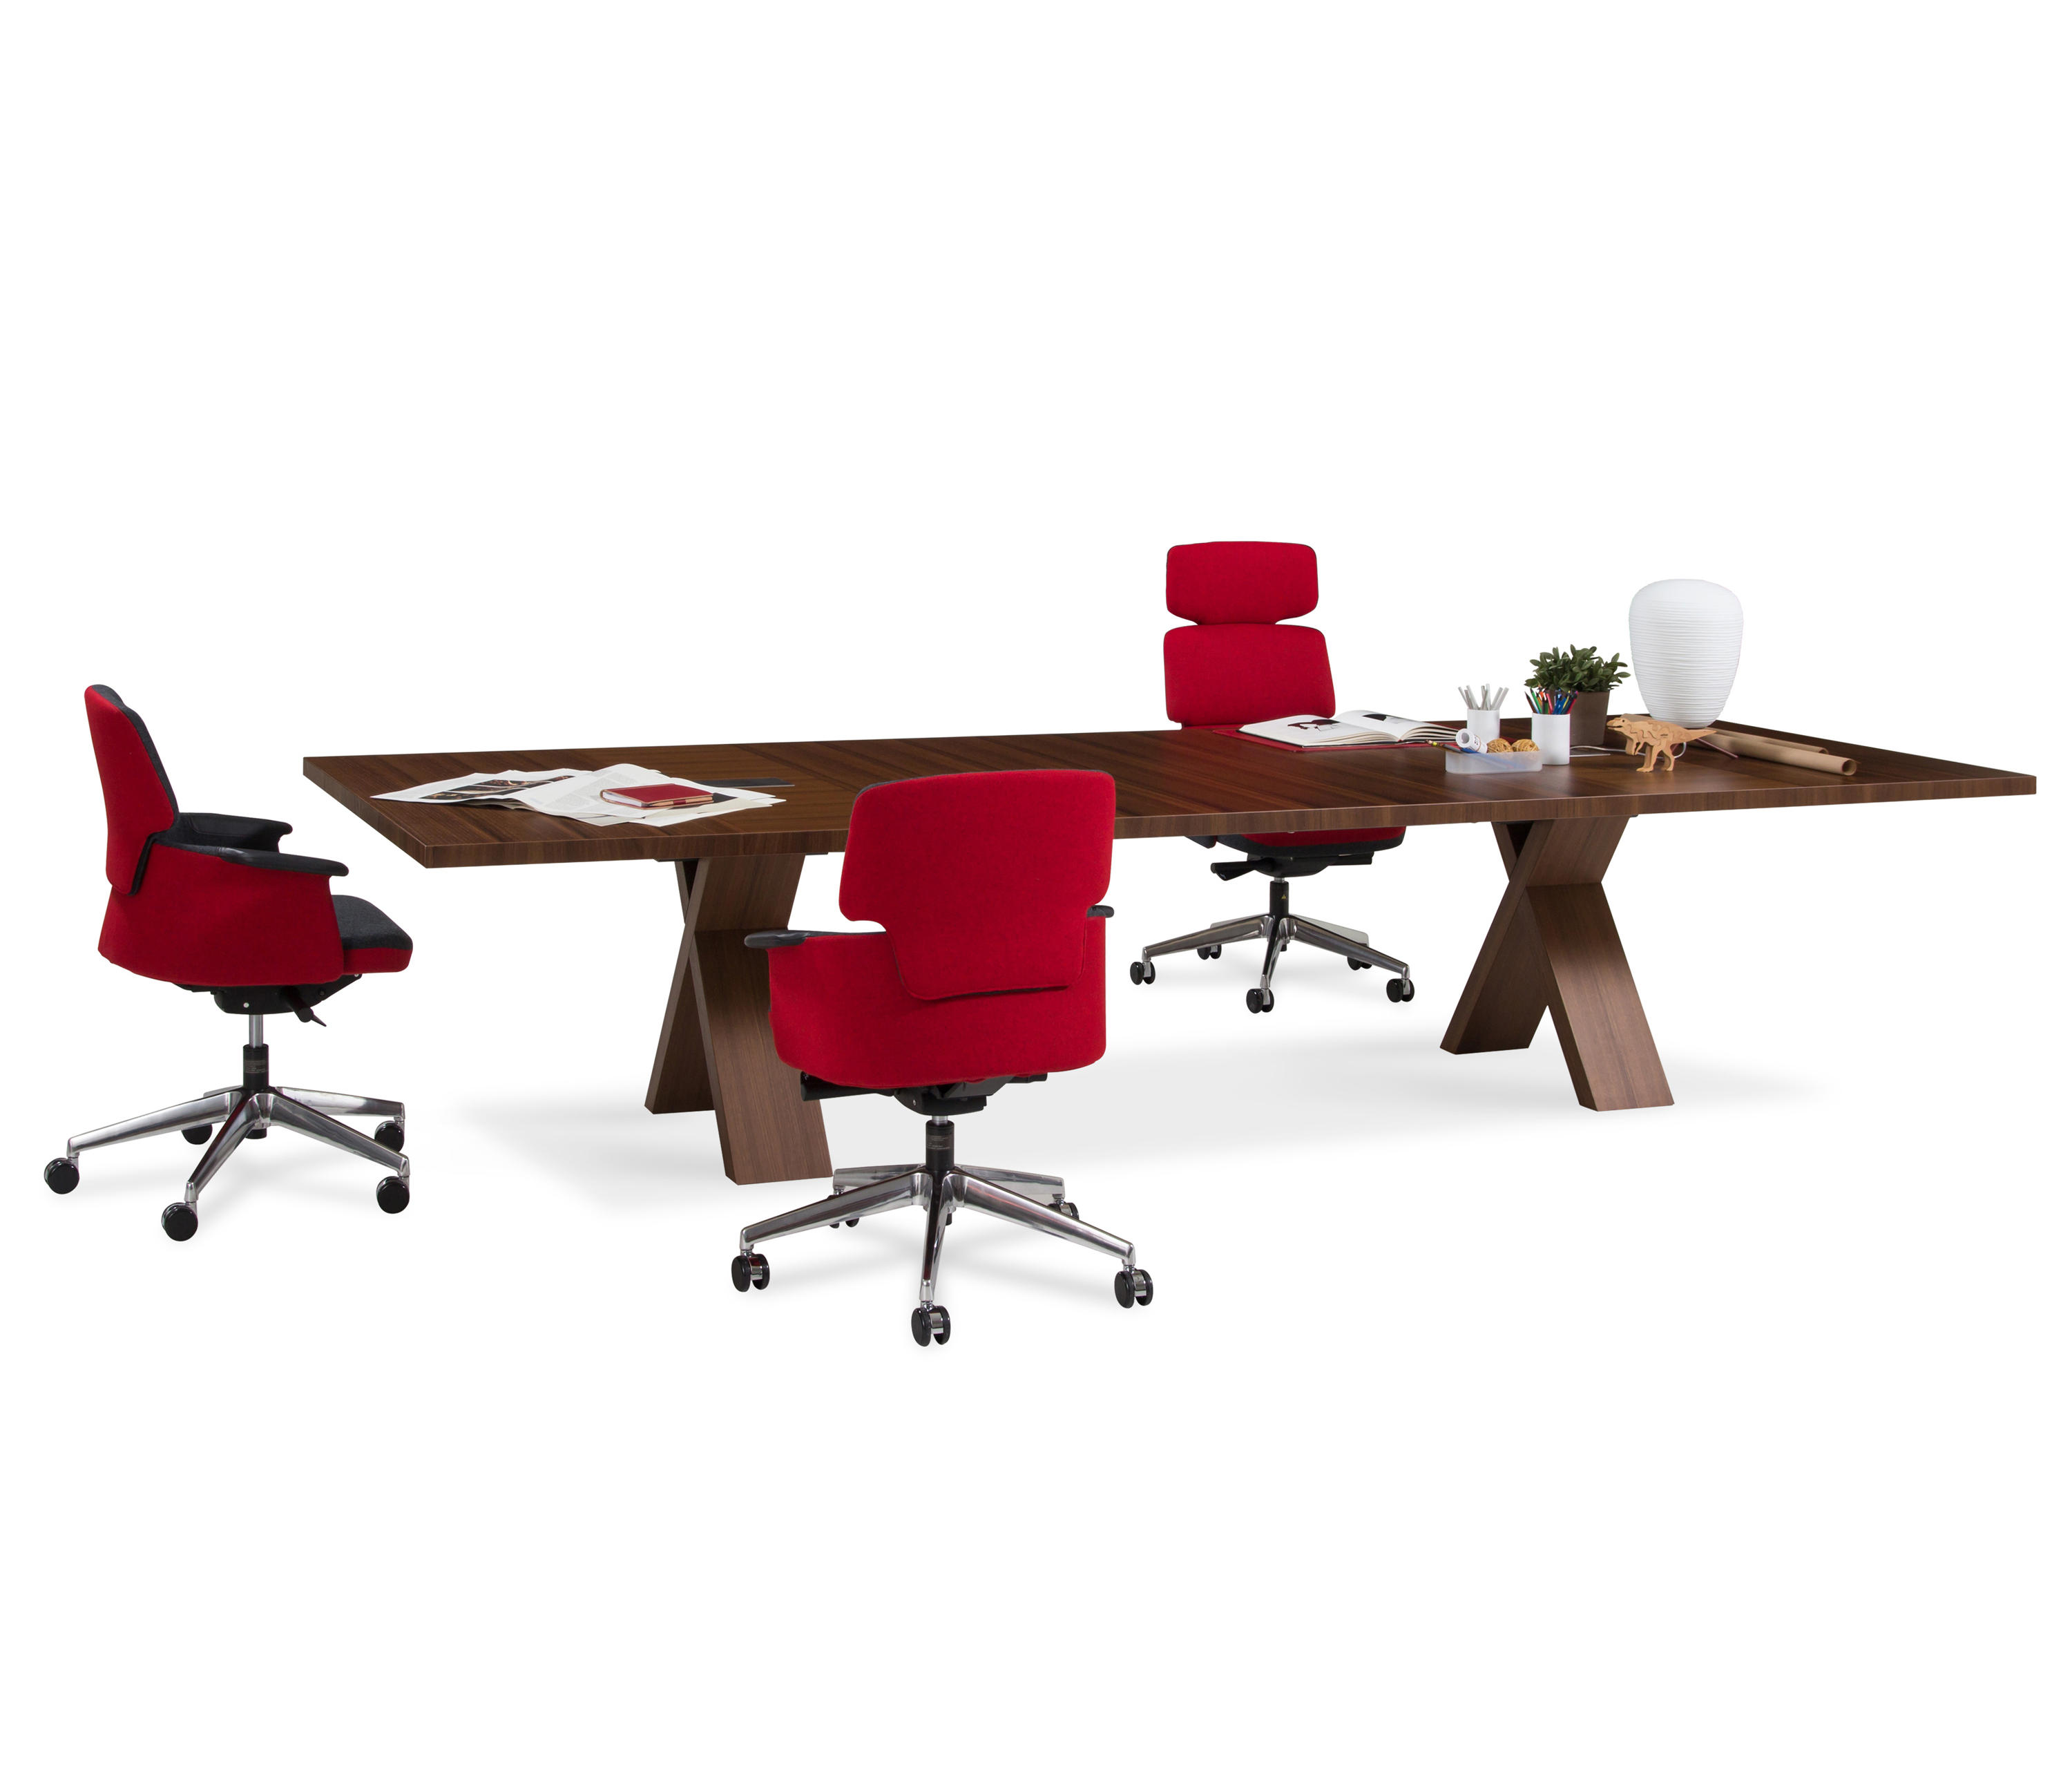 Partita meeting desk conference tables from koleksiyon furniture partita meeting desk by koleksiyon furniture conference tables keyboard keysfo Gallery